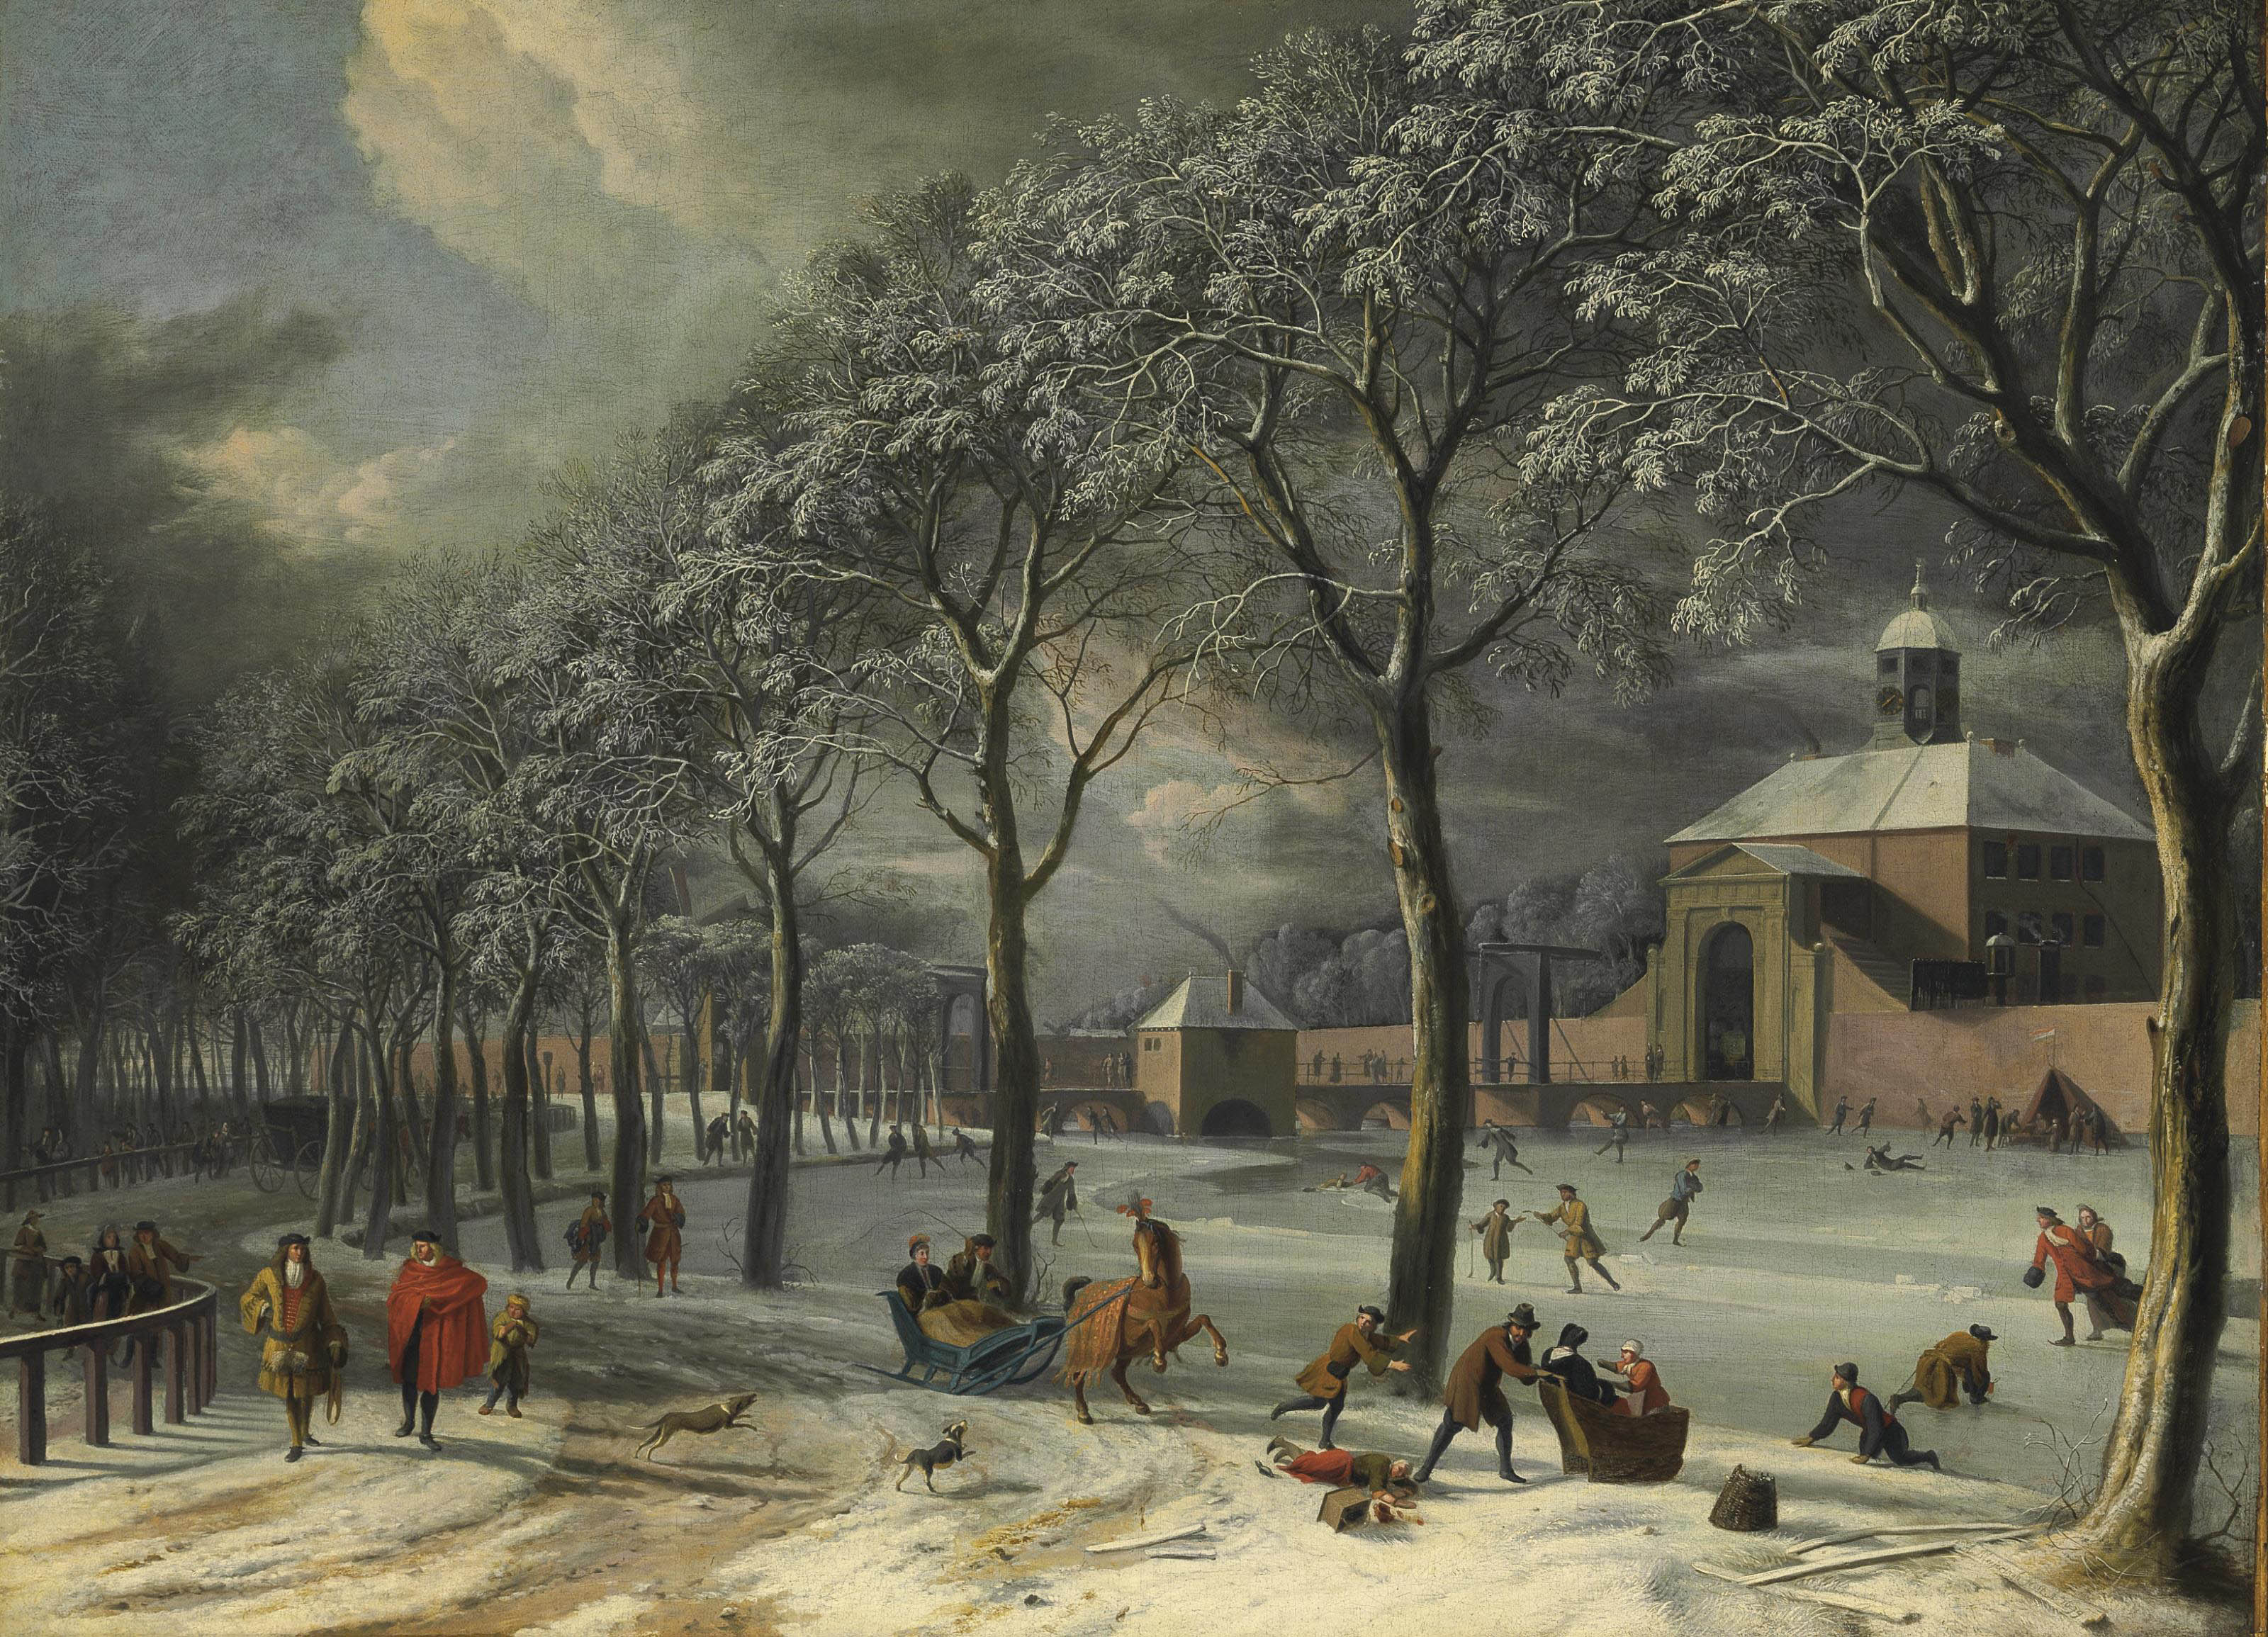 A winter scene of the Weesper poort, Amsterdam, with townsfolk in a park and a frozen canal with skaters and kolf players